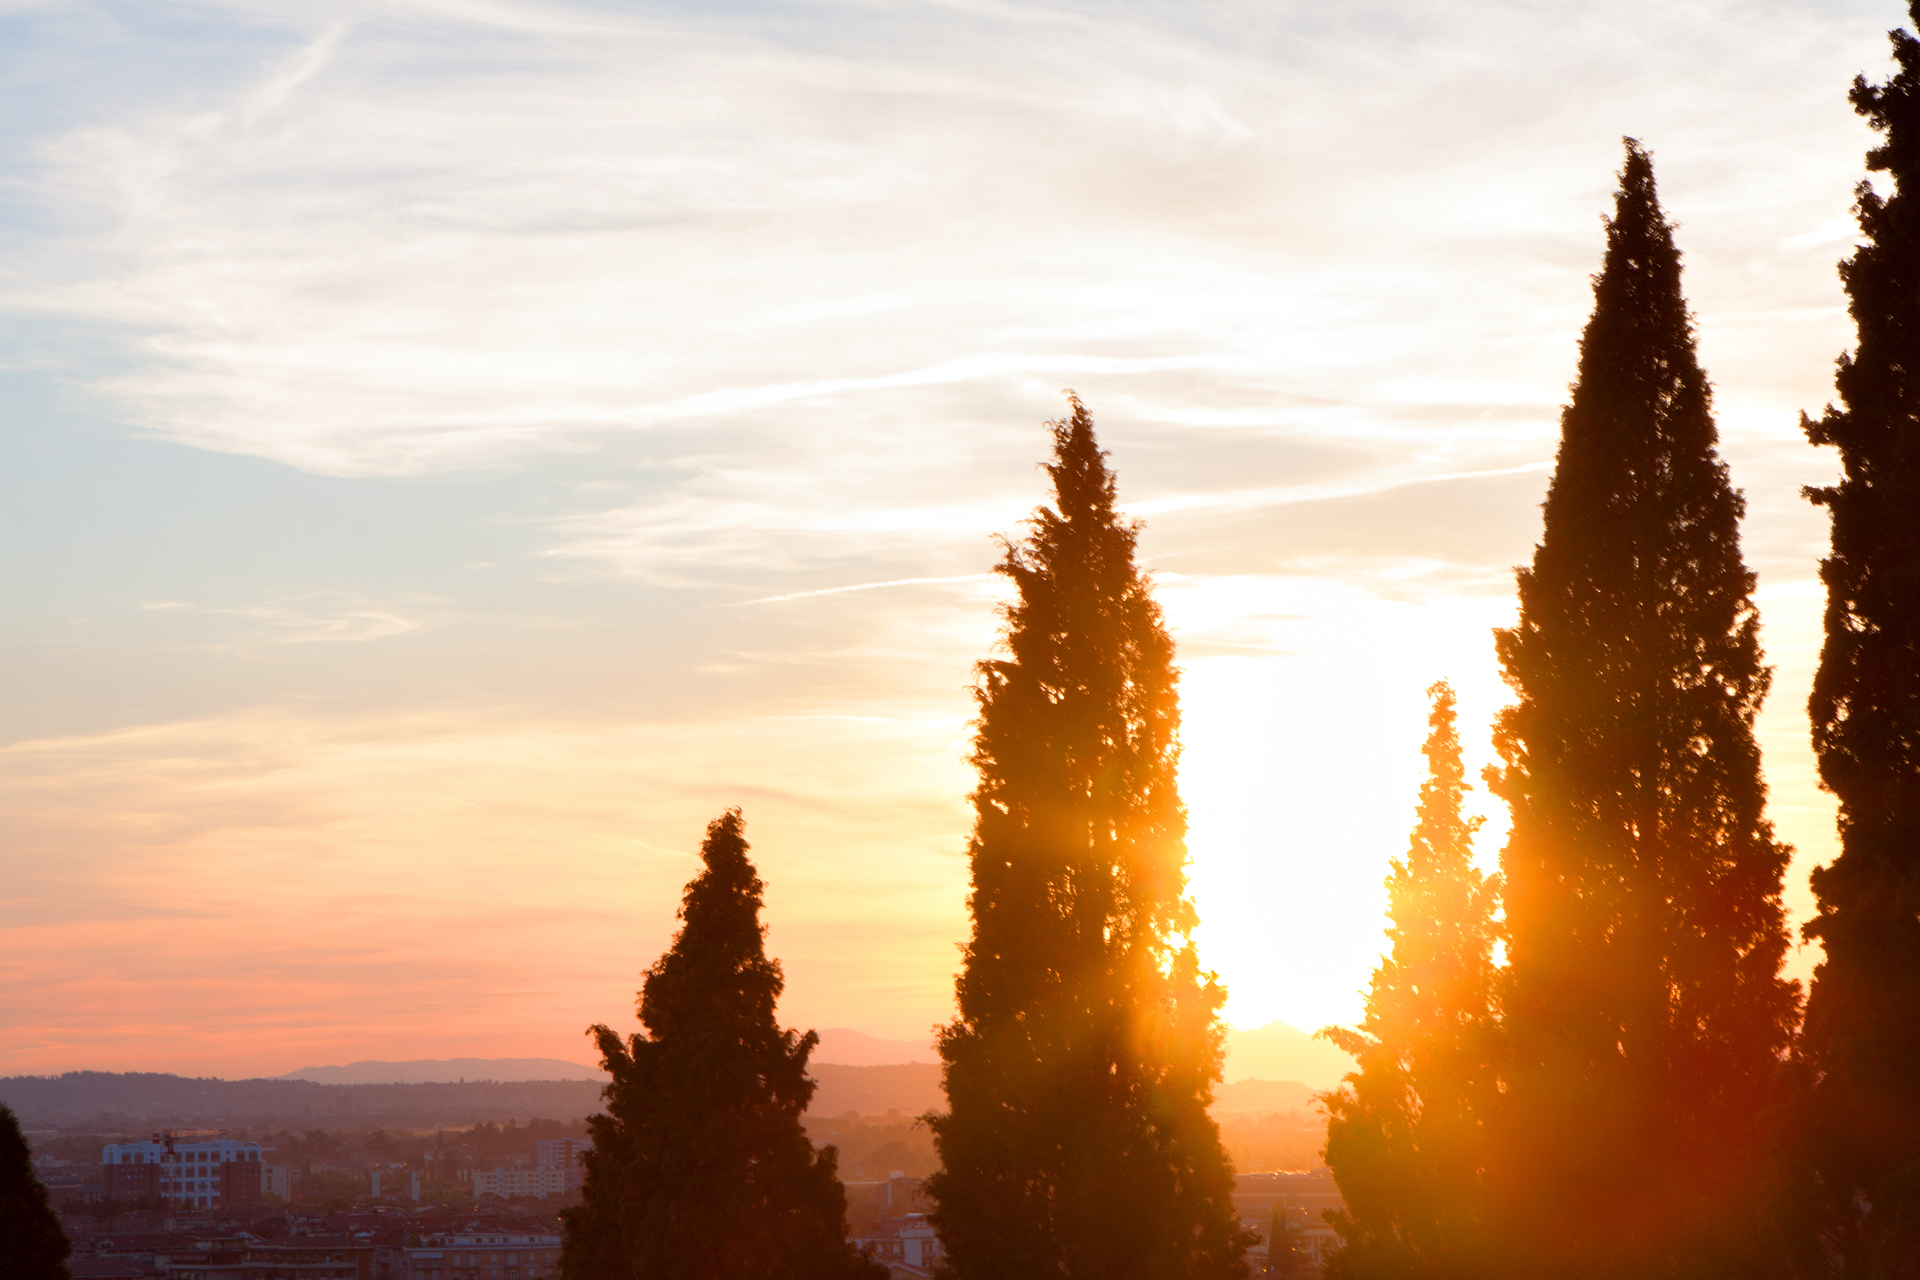 Verona, Italy Sunset with Cypress Tree Silhouette